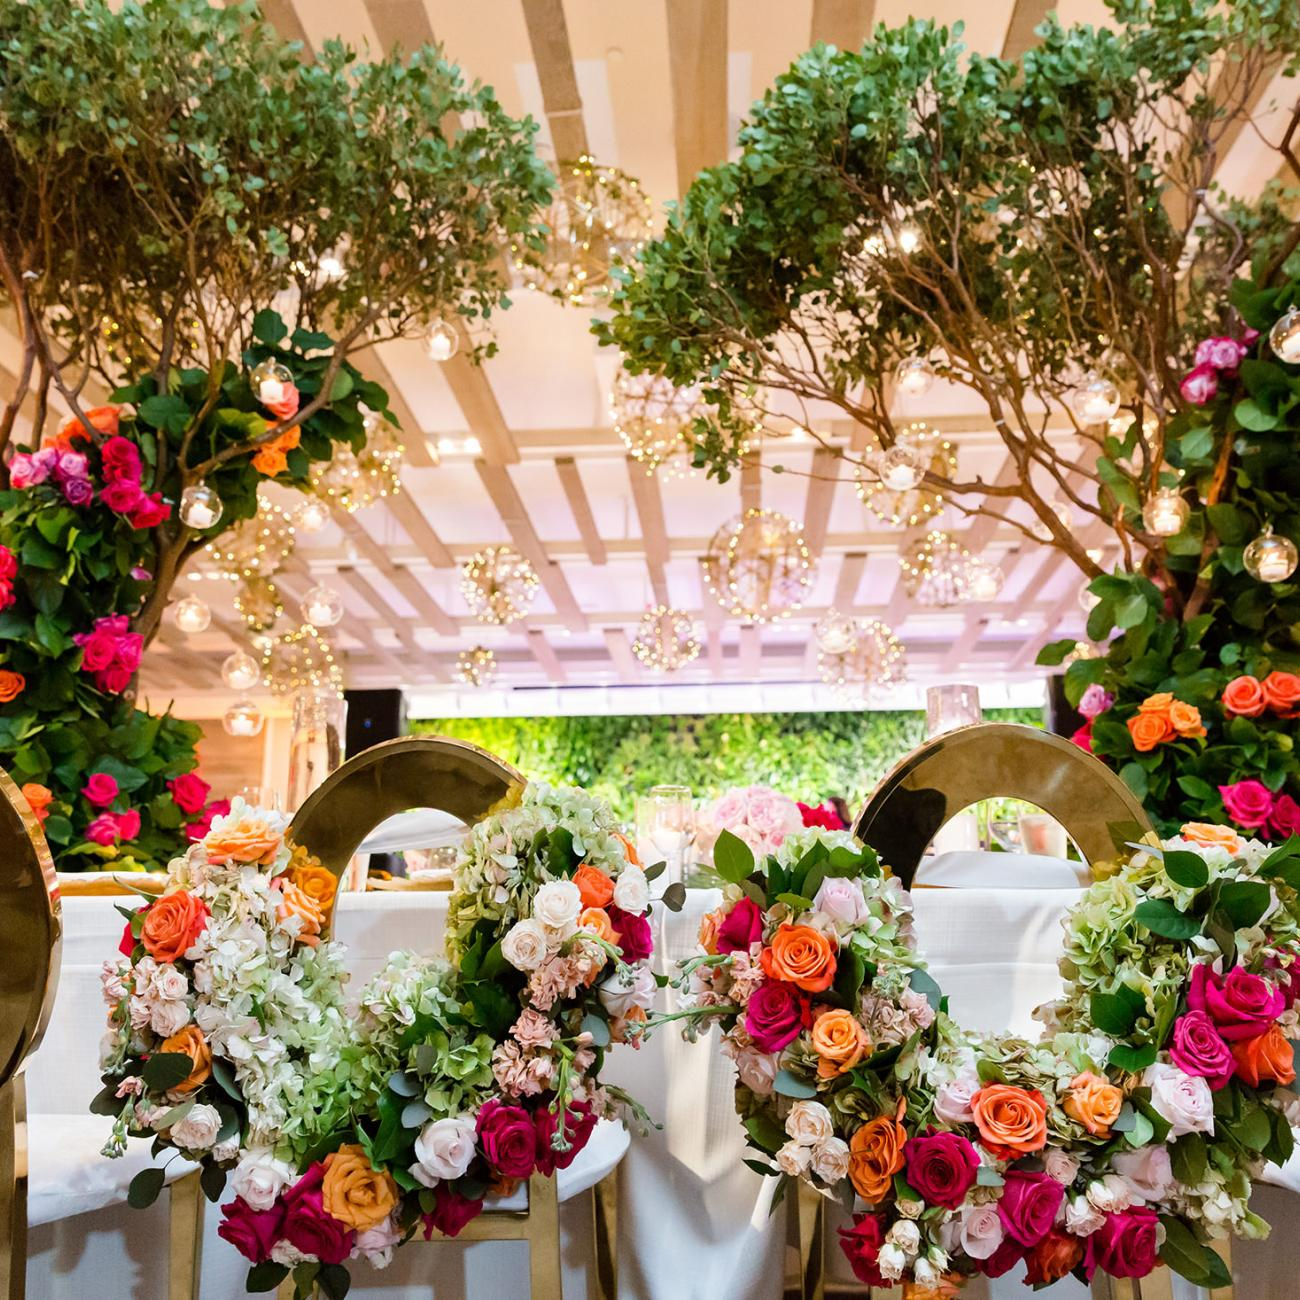 The head table of a wedding reception decorated with colorful flowers